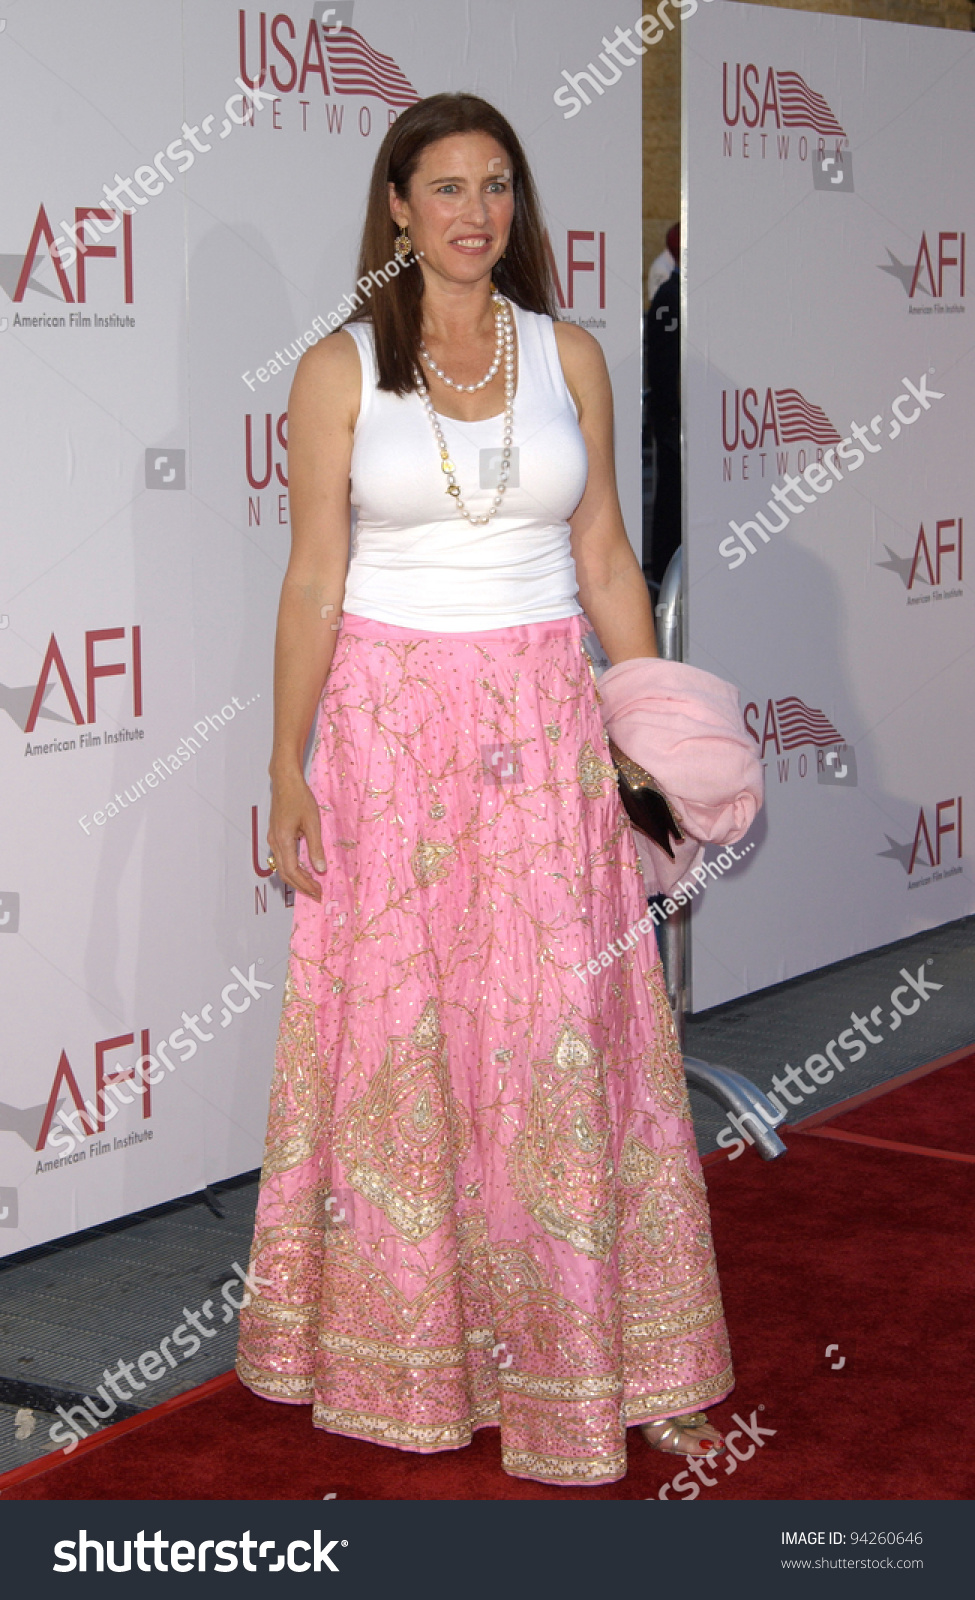 Forum on this topic: Anita West (born 1935), mimi-rogers/